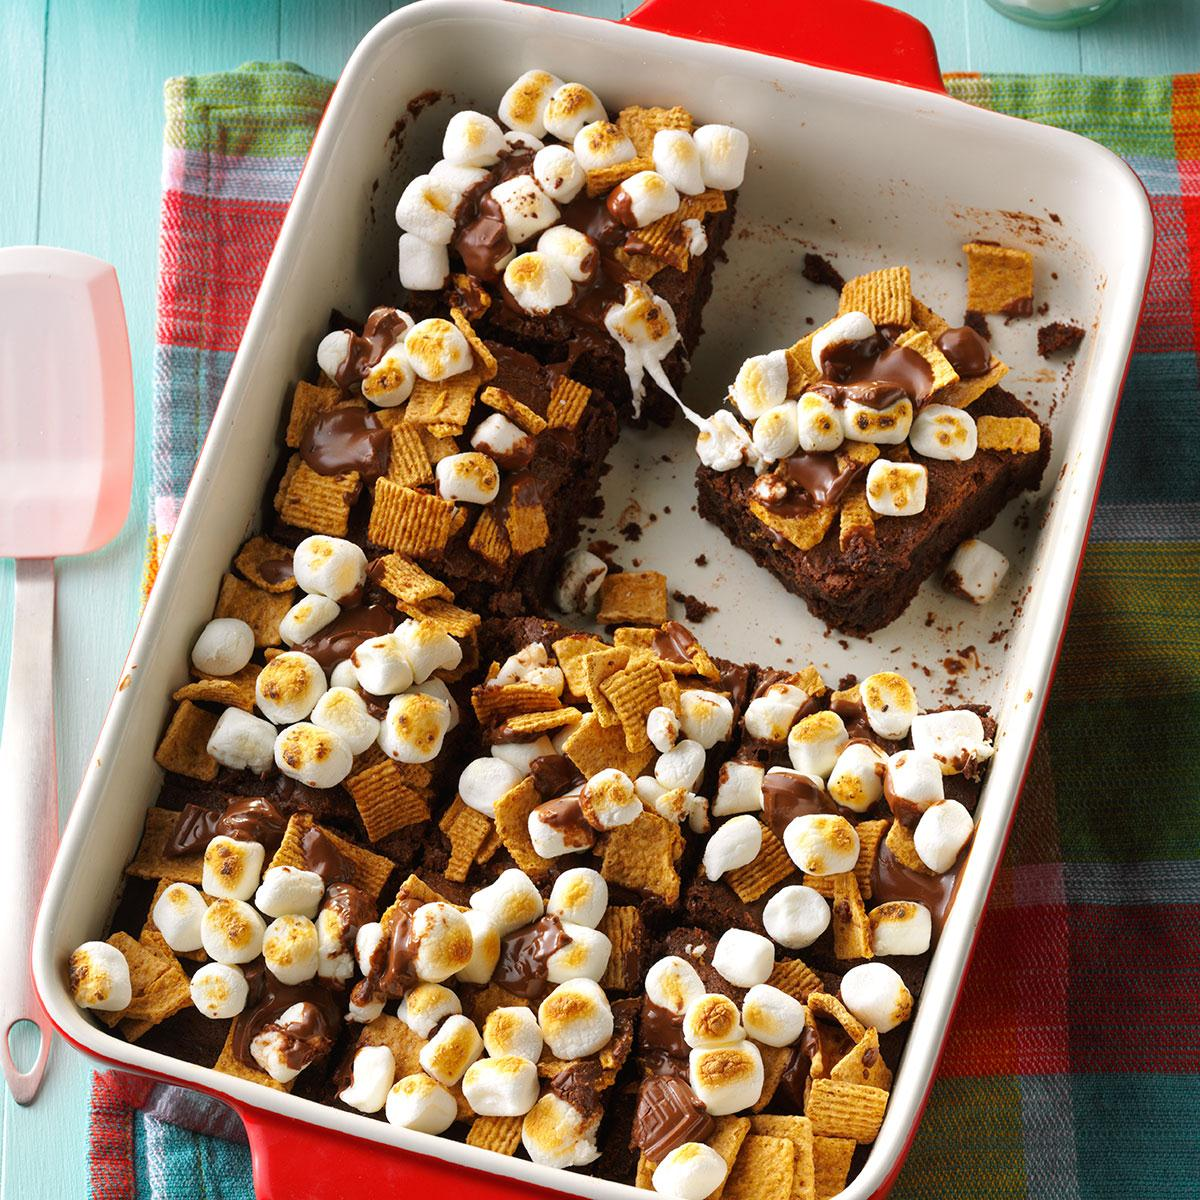 23 Camping Desserts The Ultimate Collection For Campers: Fudgy S'mores Brownies Recipe